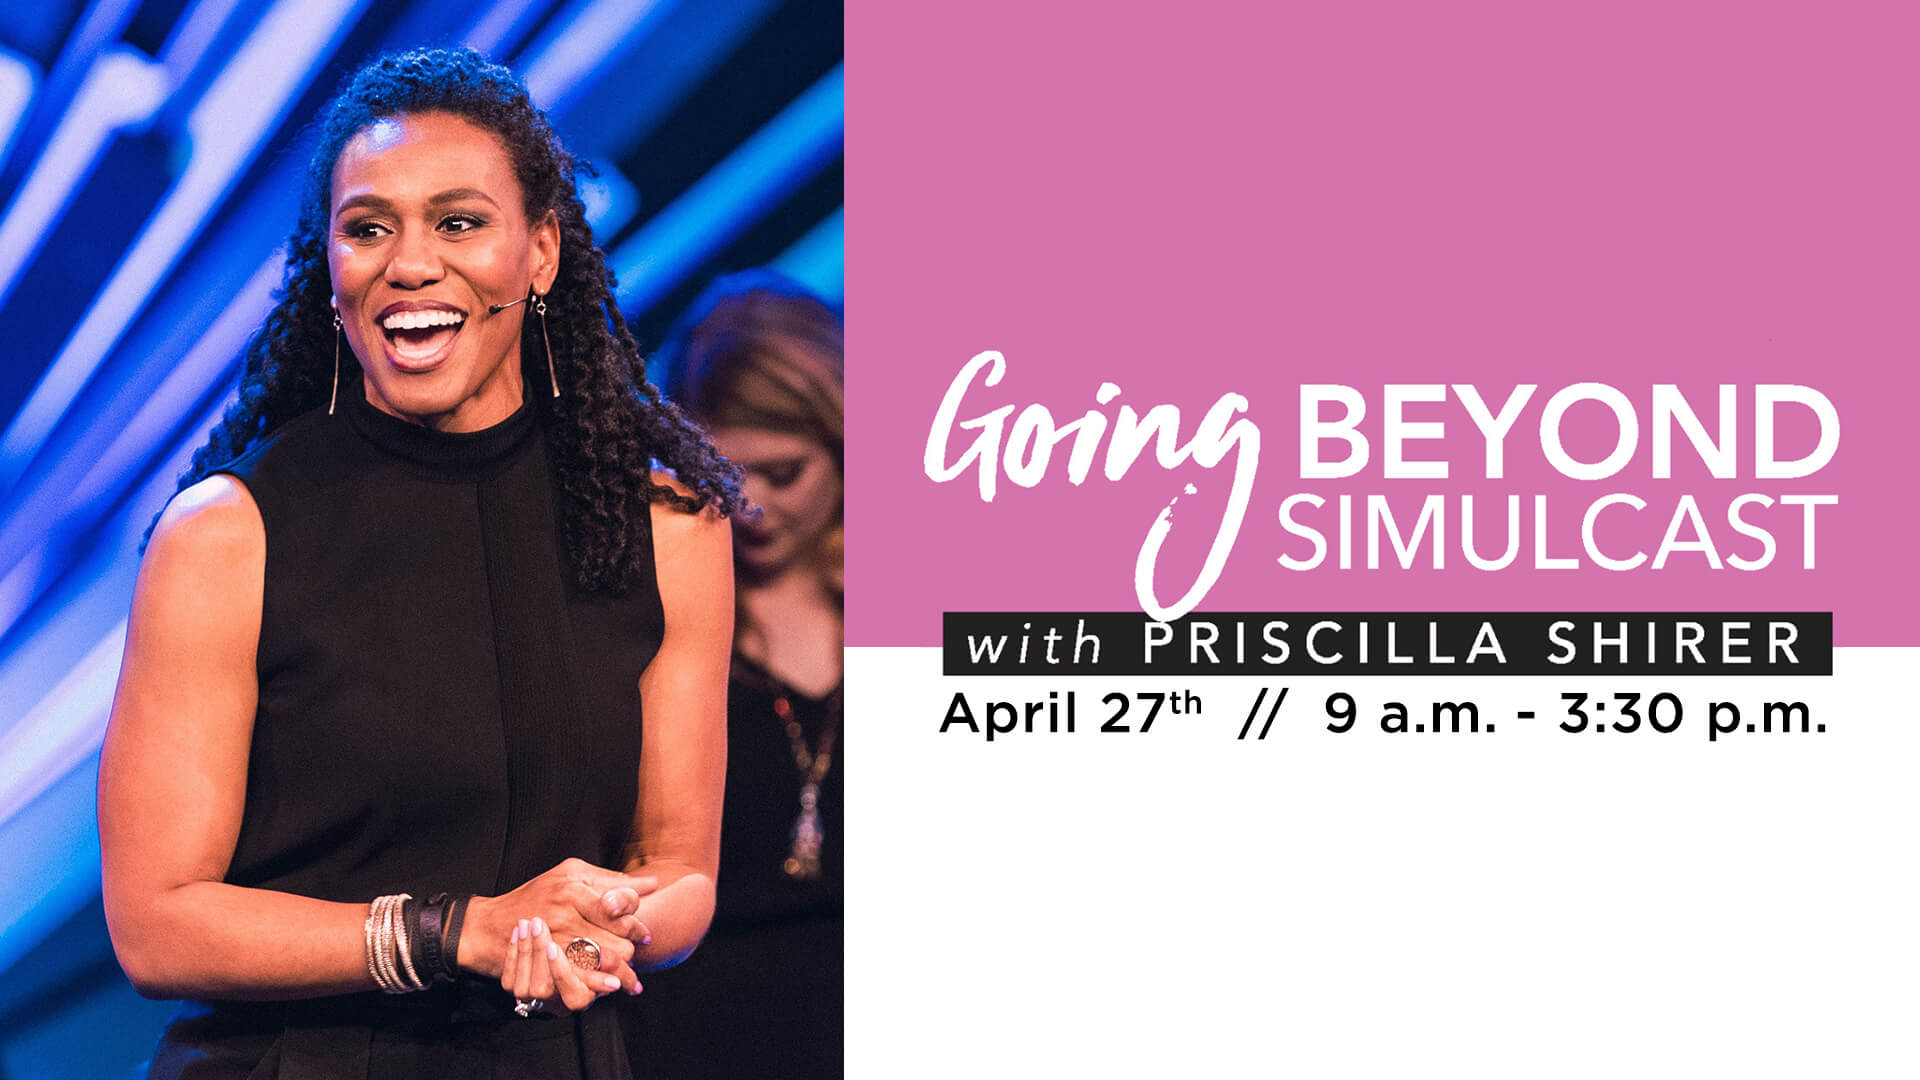 Event - Priscilla Shirer Simulcast 2019 - Wide (16_9) copy.jpg